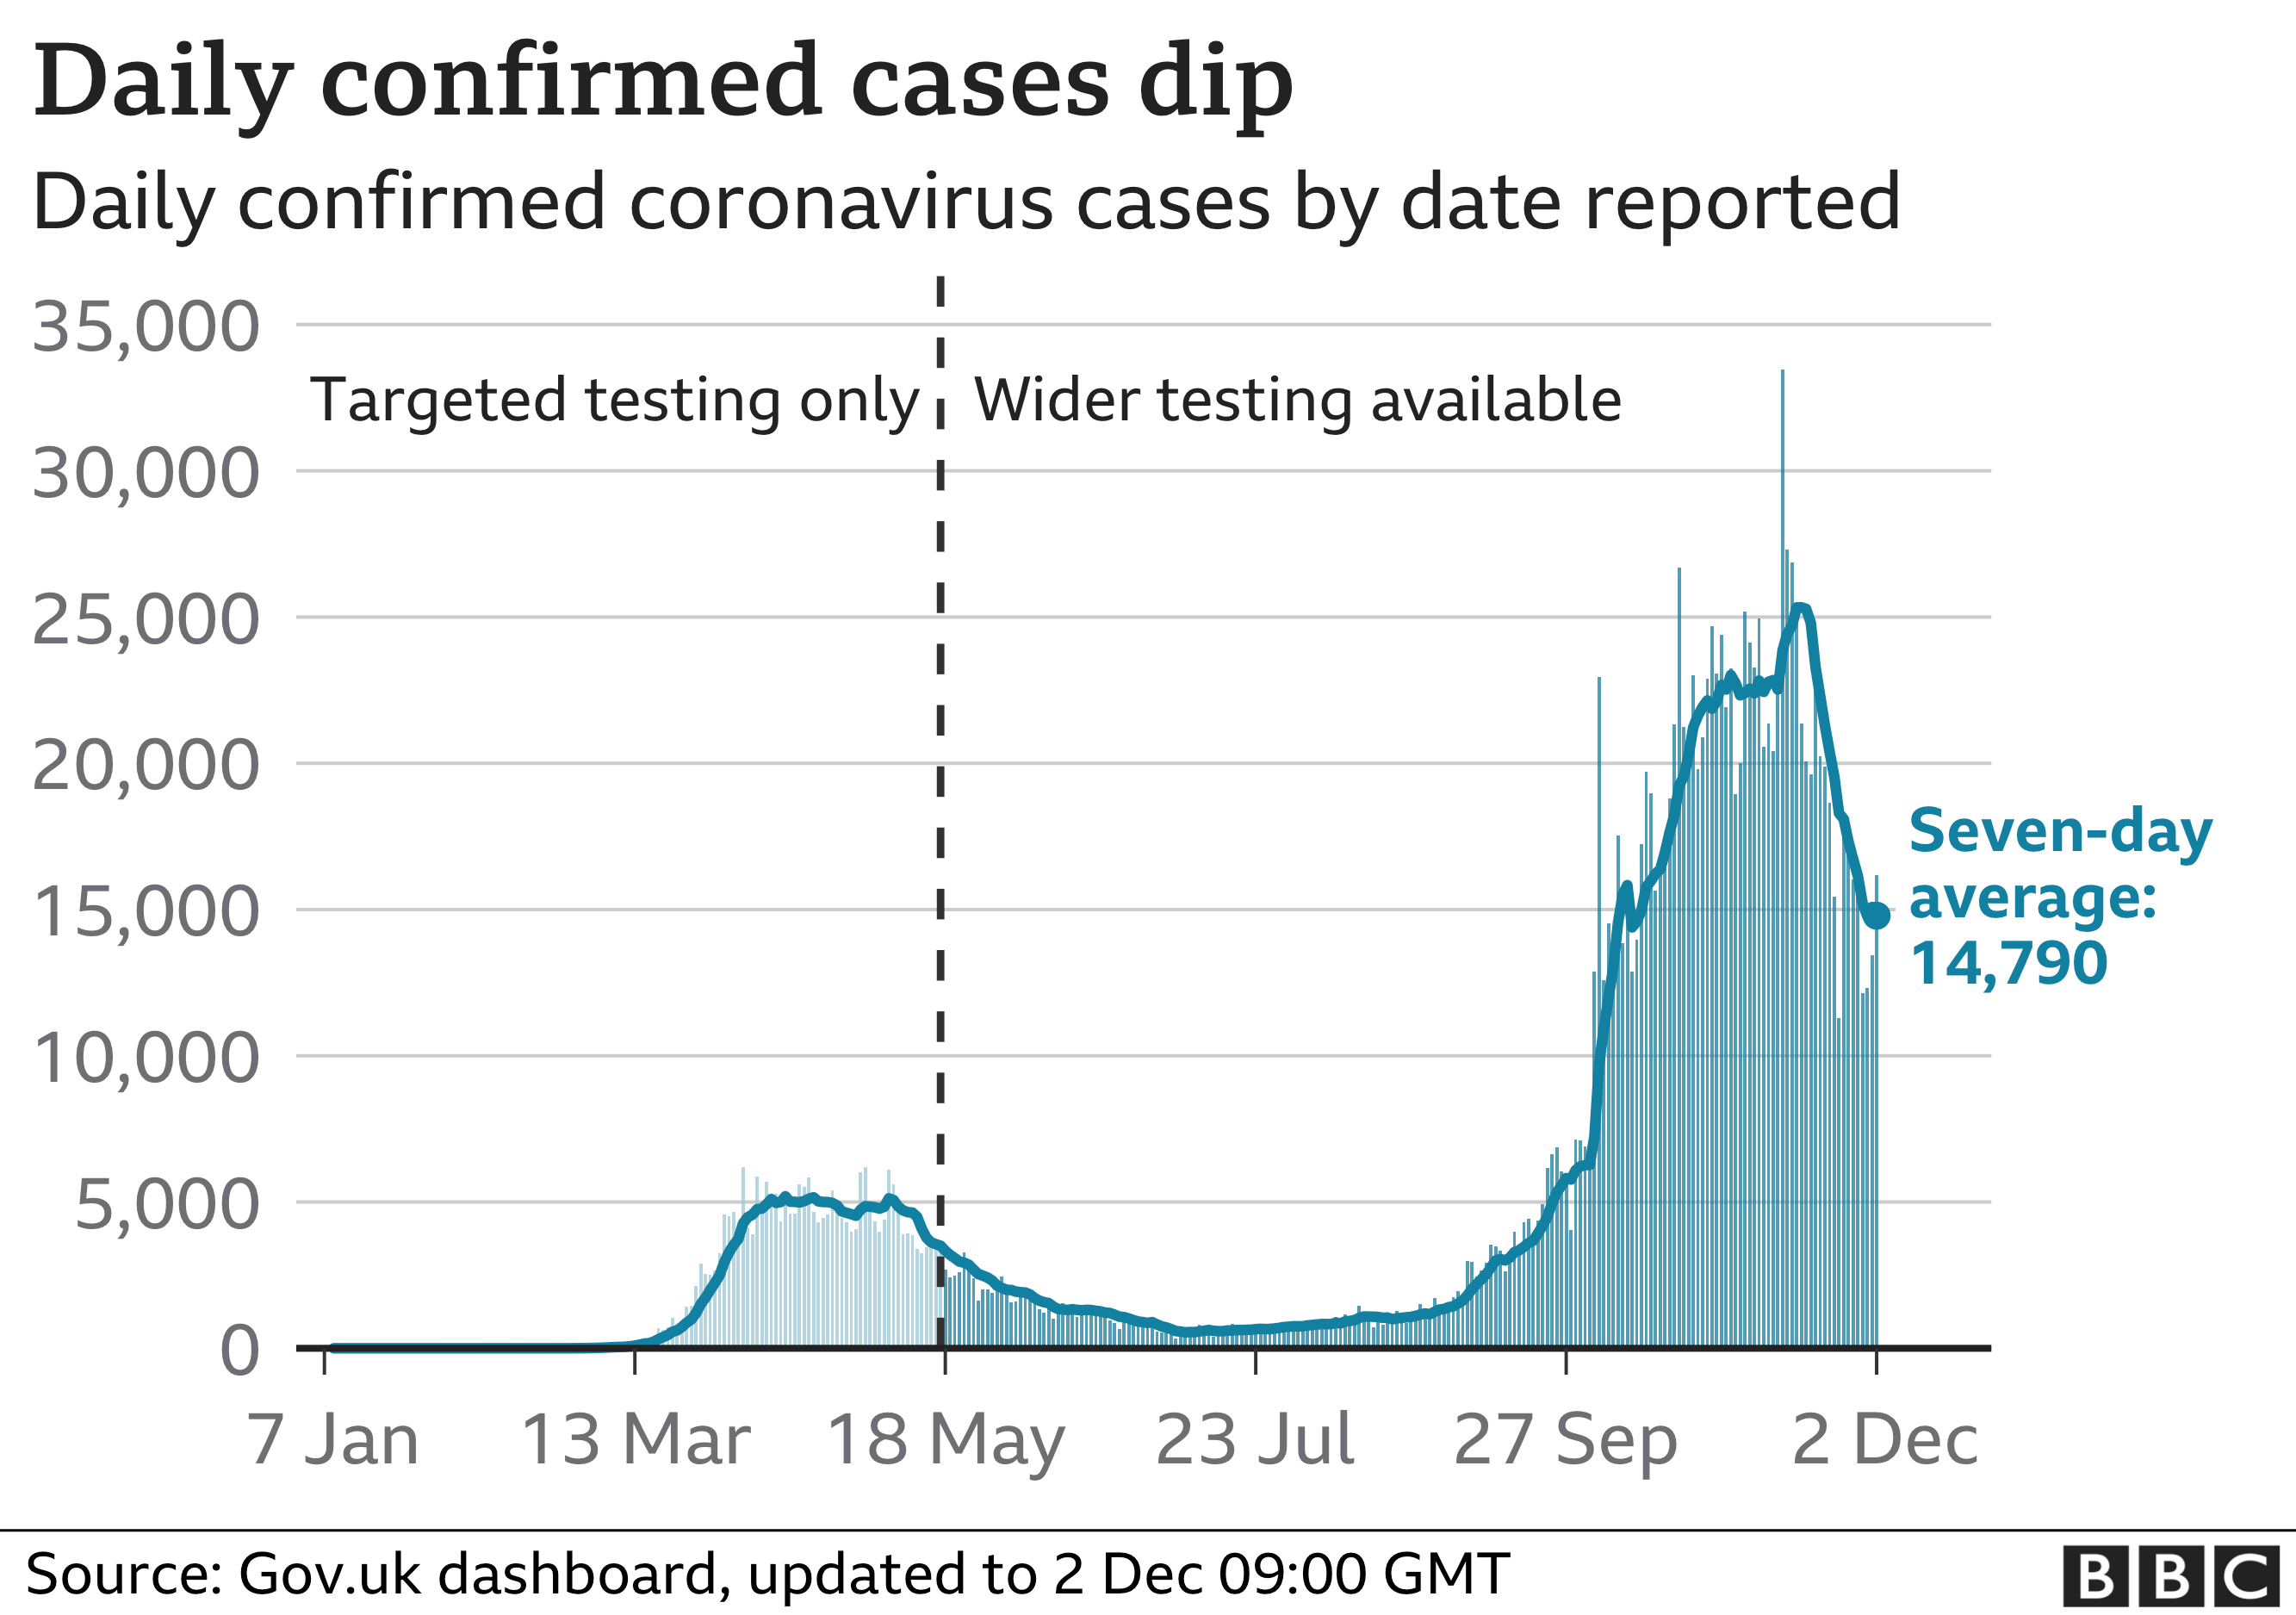 Chart shows daily confirmed cases continuing to fall